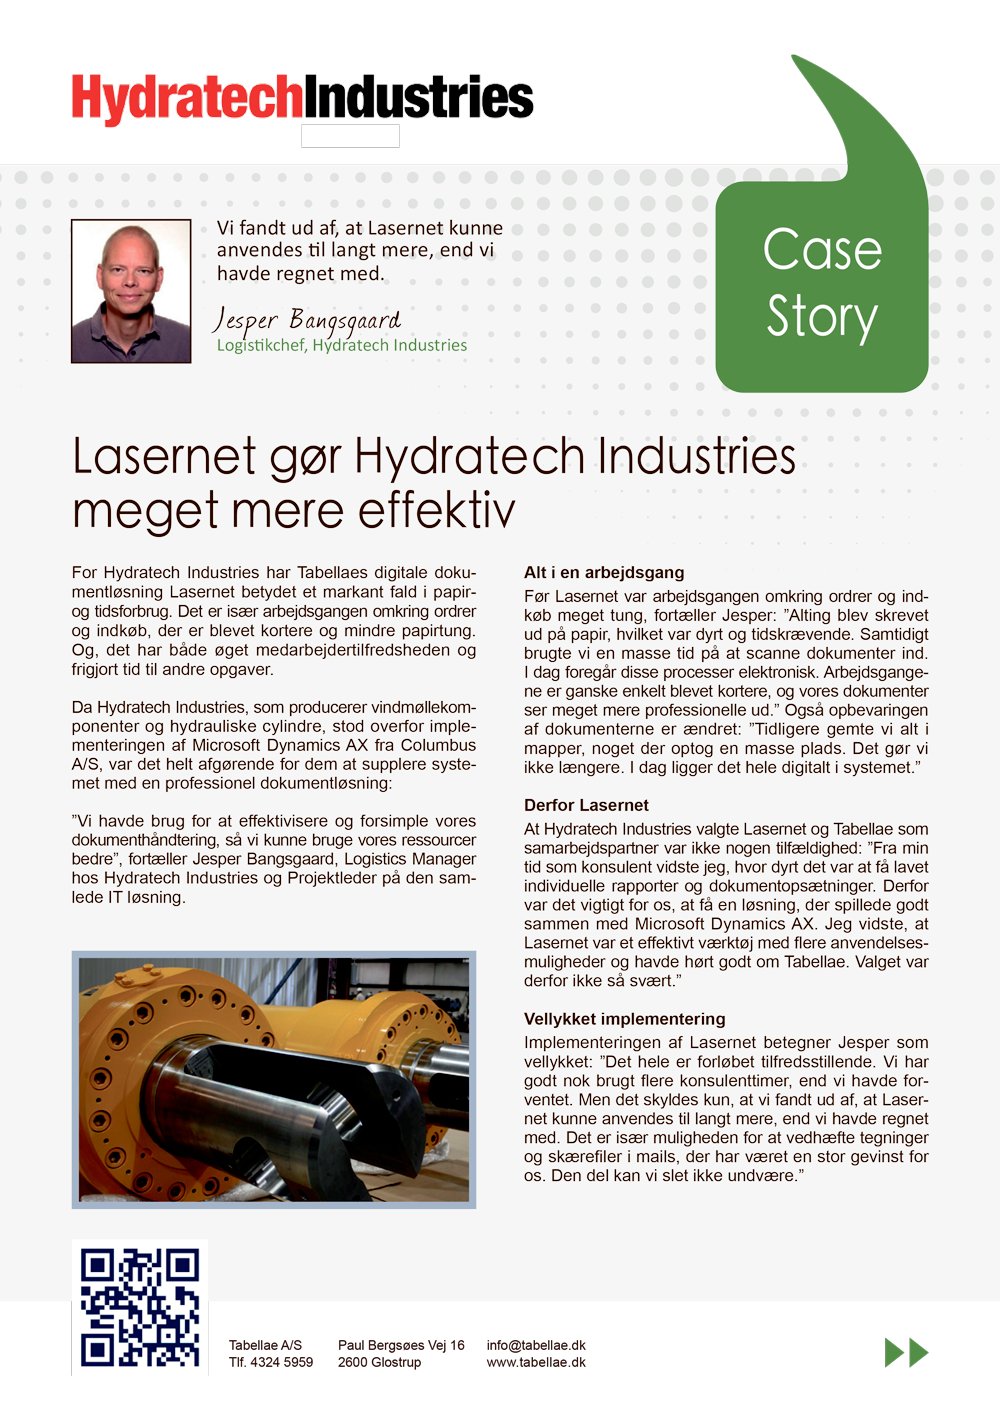 Hydratech Industries